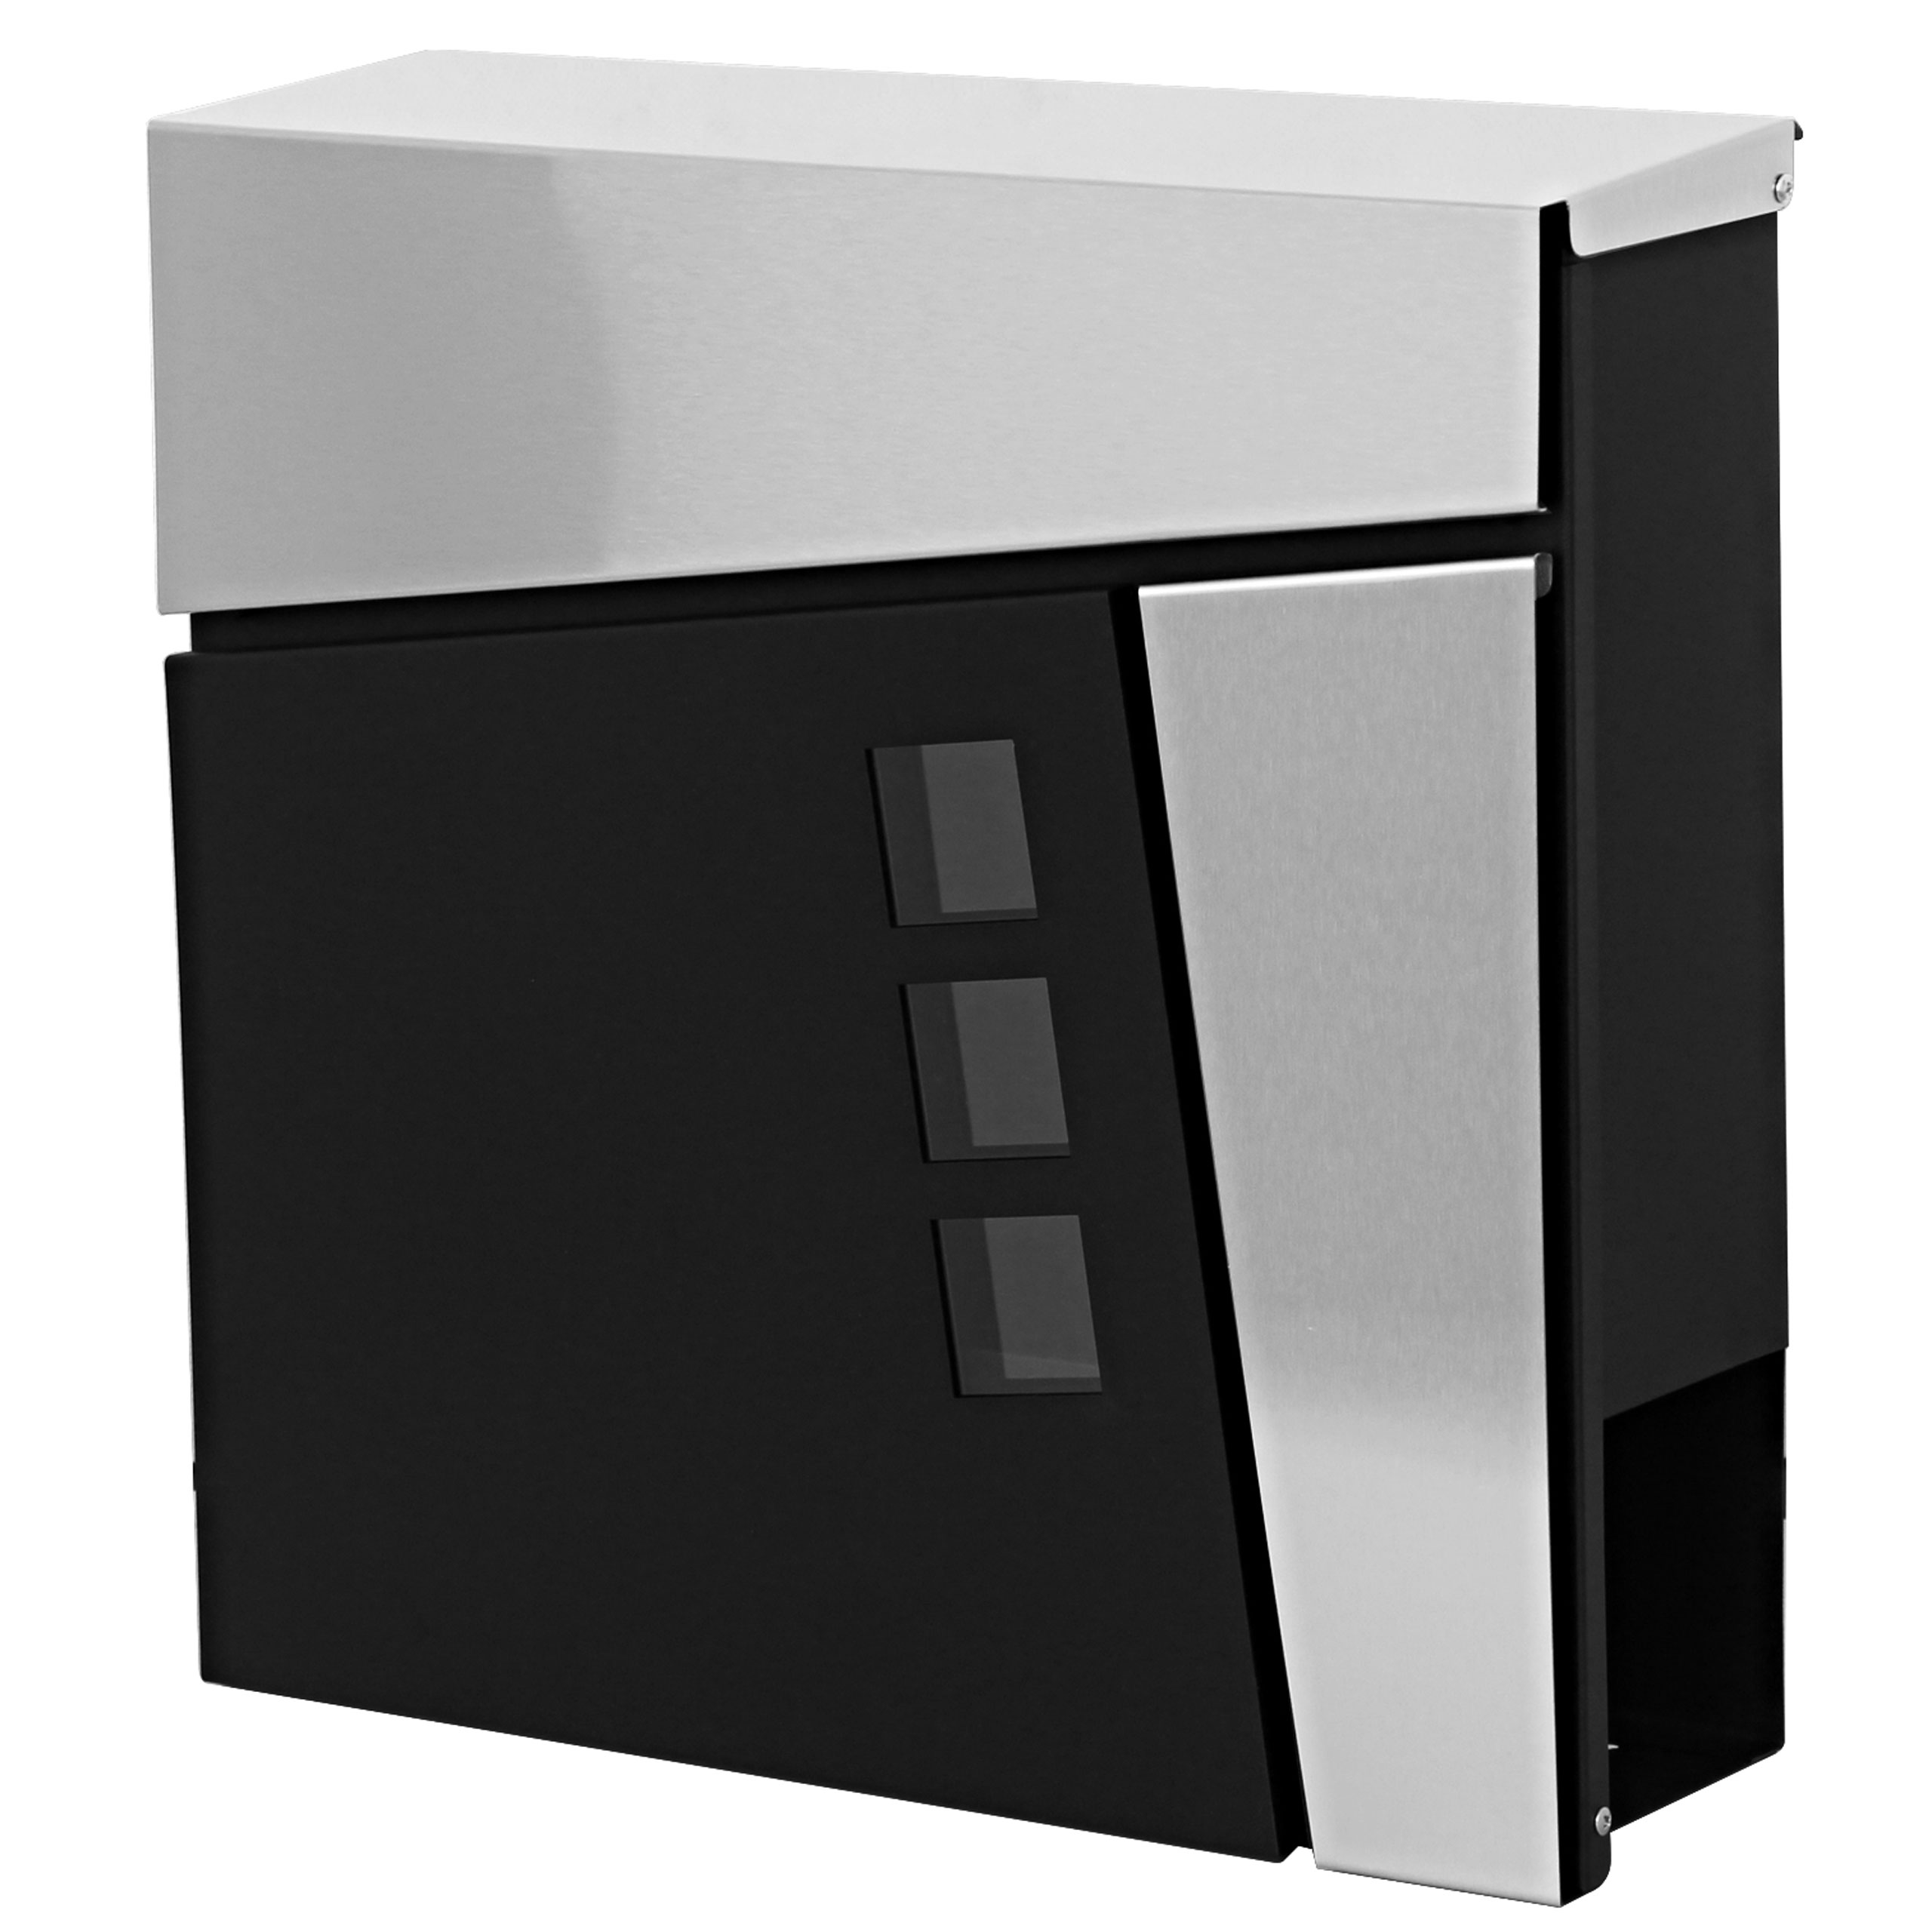 briefkasten mcw b33 wandbriefkasten postkasten zeitungsfach pulverbeschichtet anthrazit. Black Bedroom Furniture Sets. Home Design Ideas